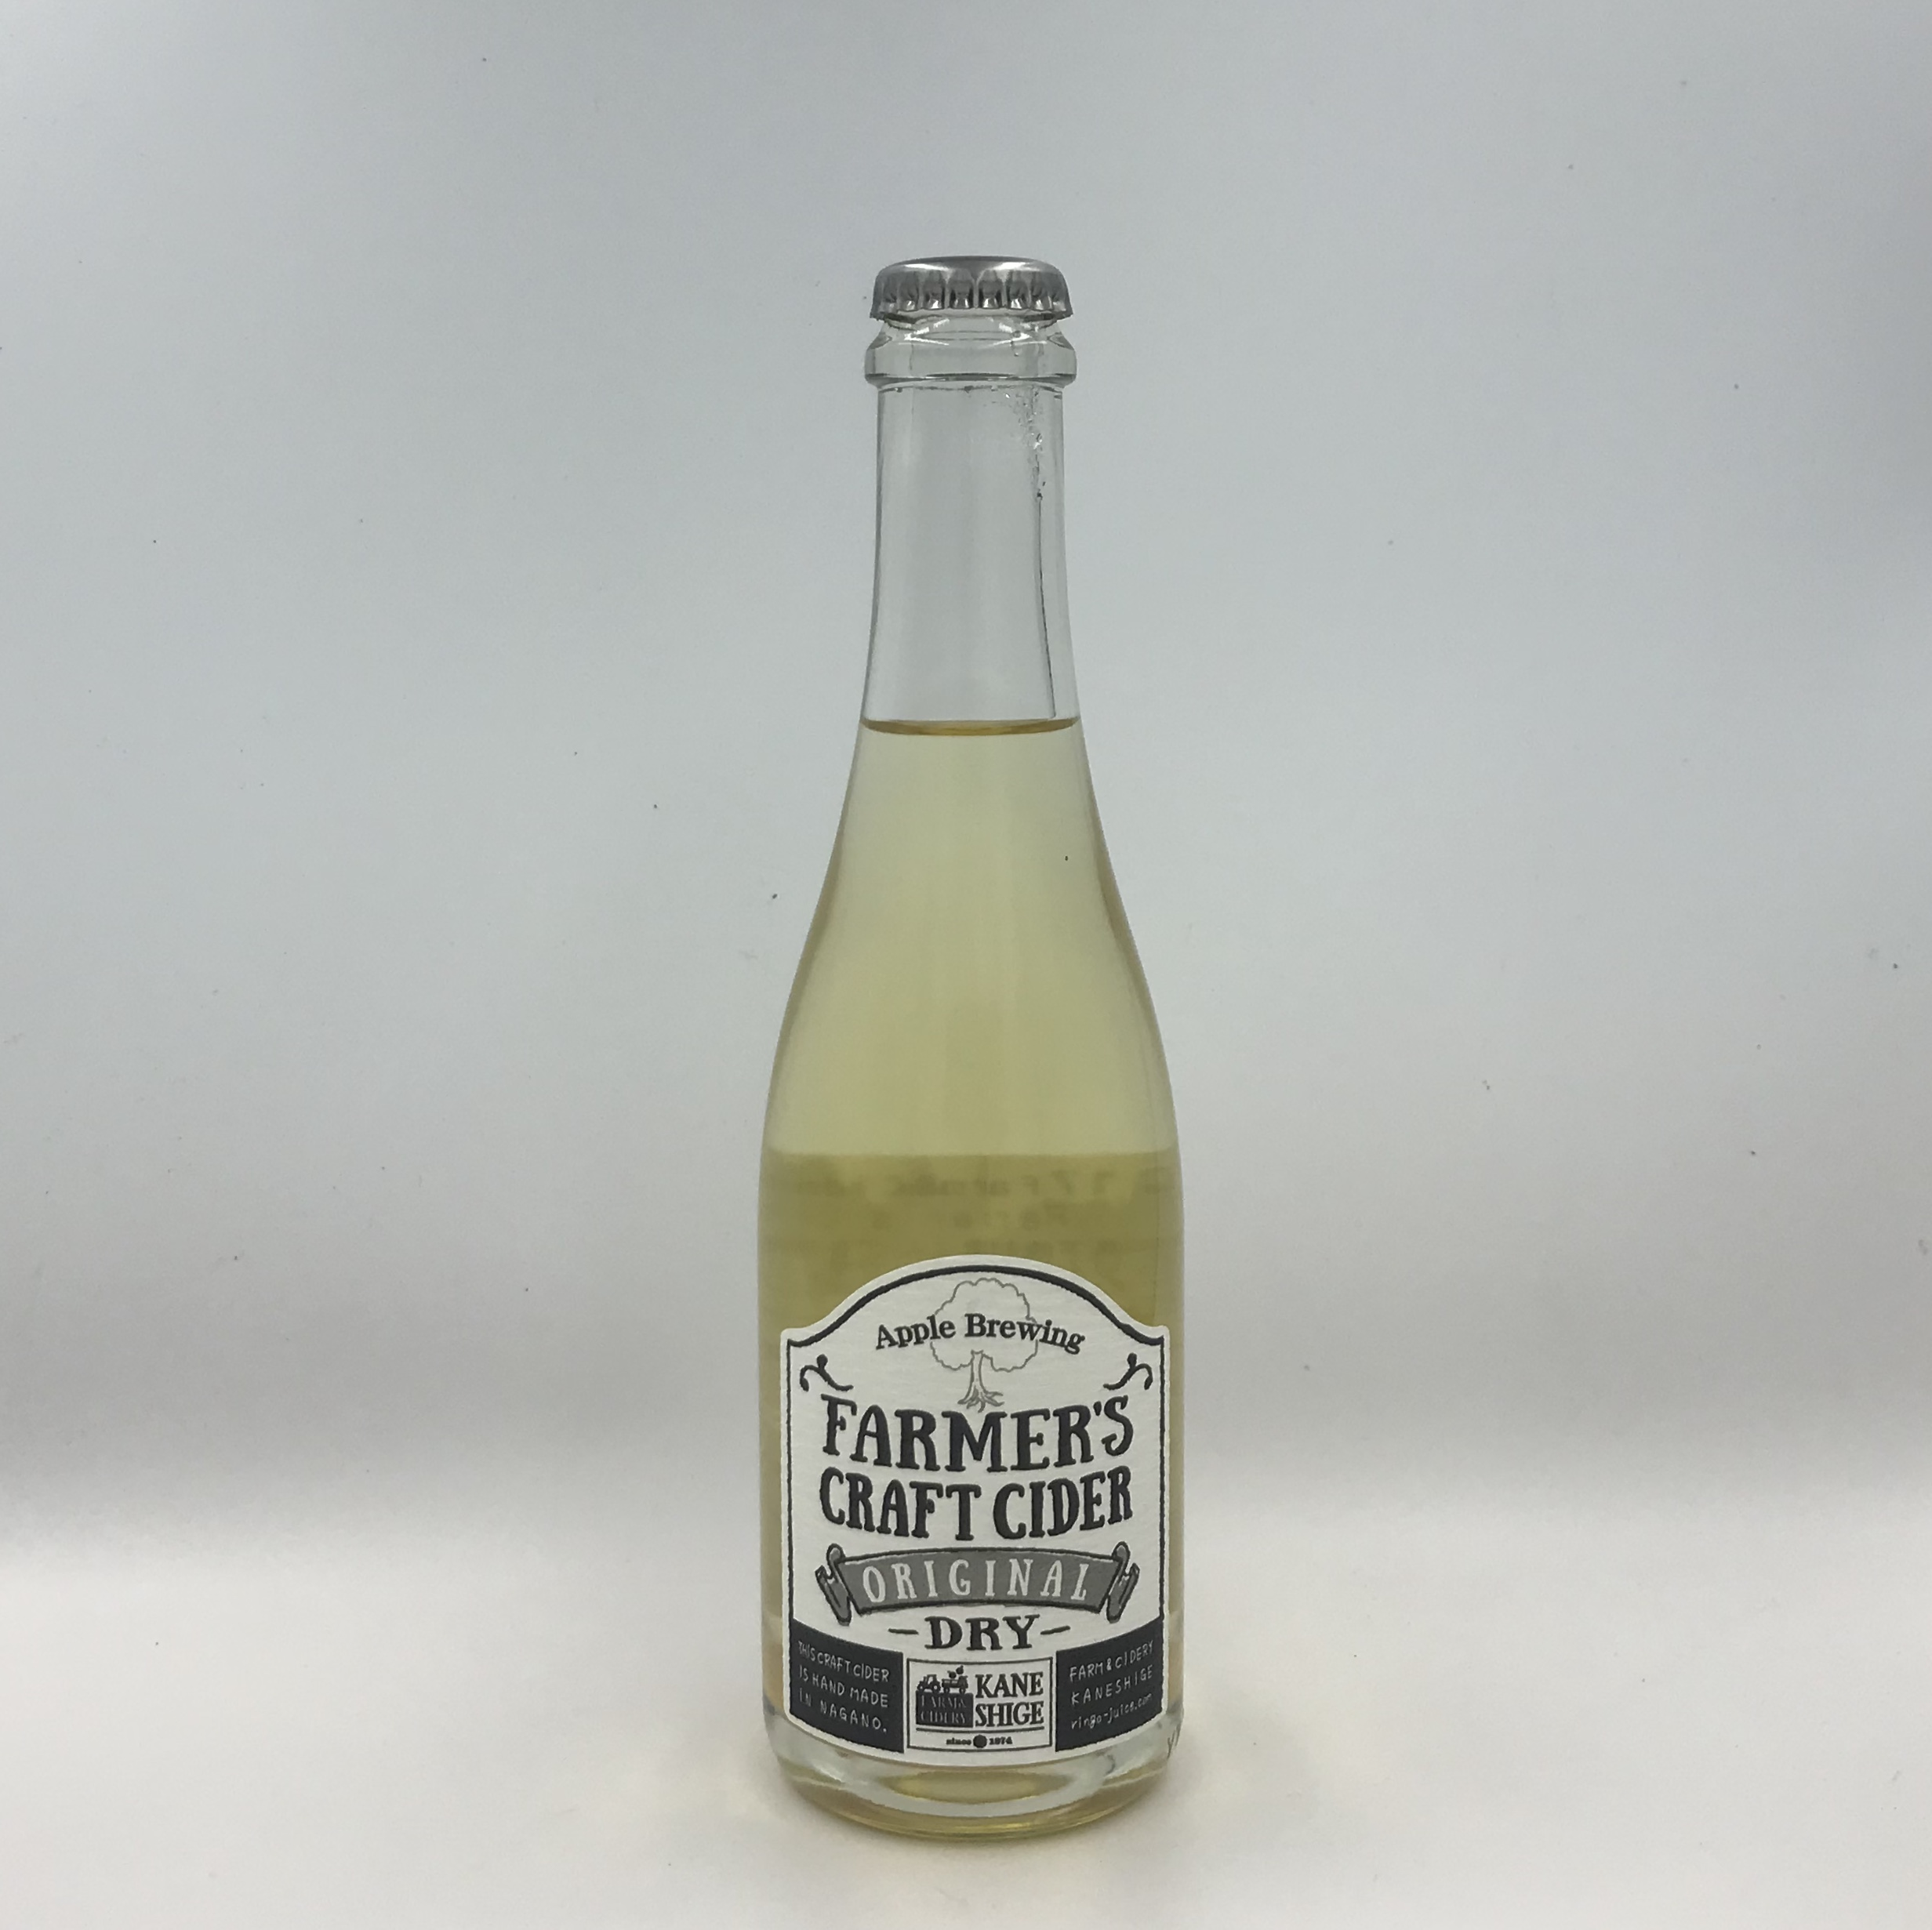 Farmer's Craft Cider 375ml